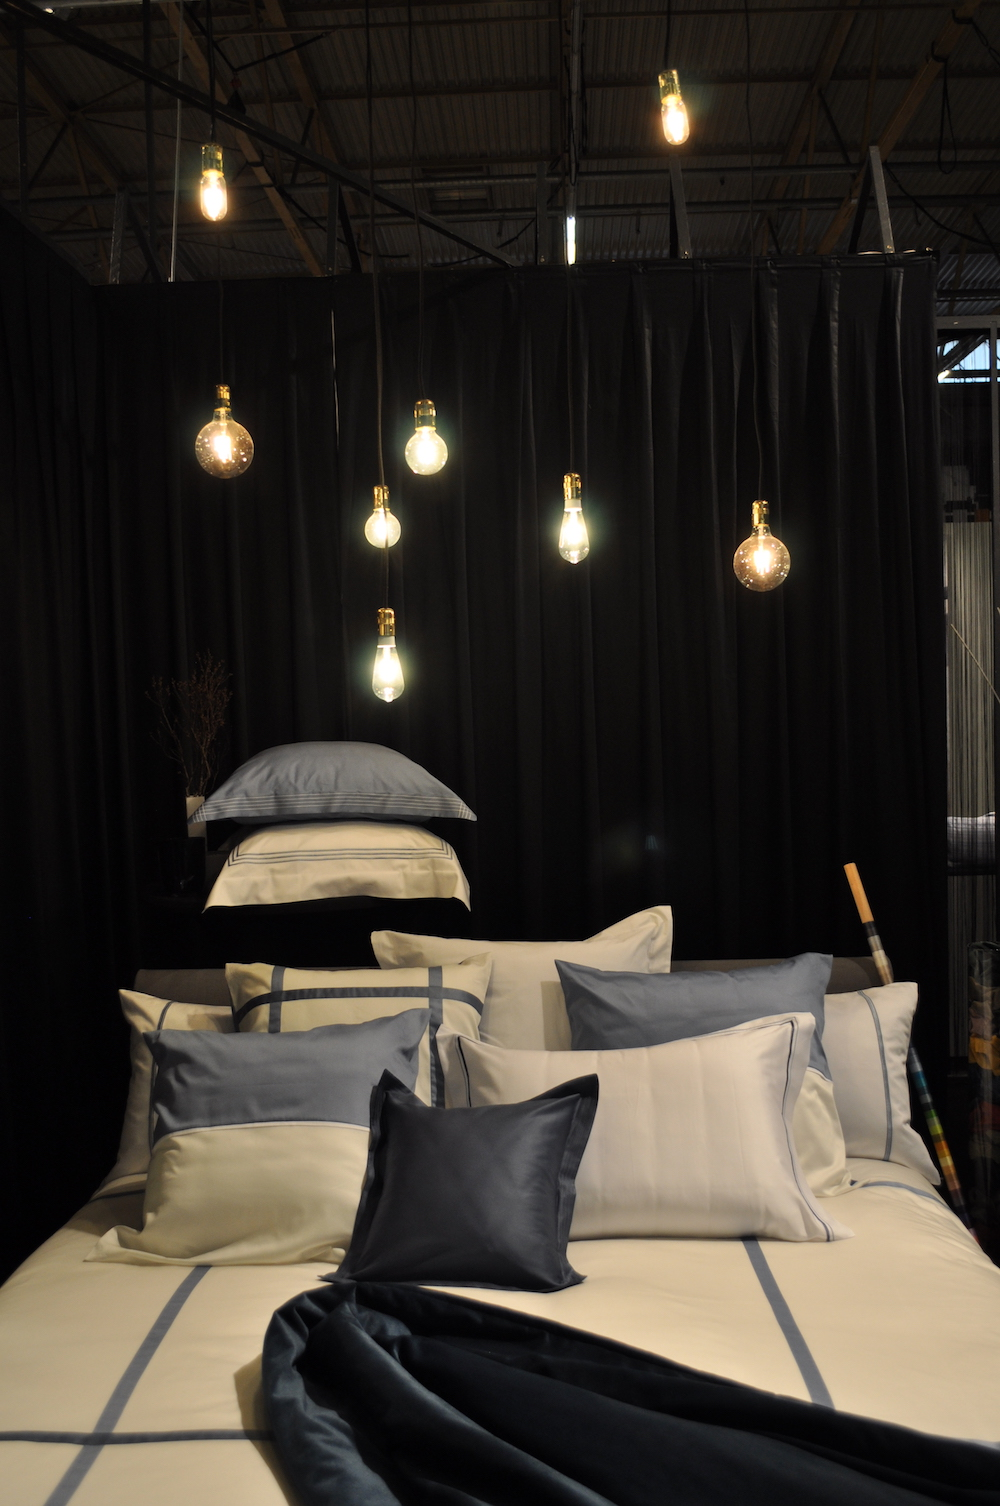 Styling ID Blog Intirio Gent presenteert Intimacy Interior Trends Lysdrap blauw